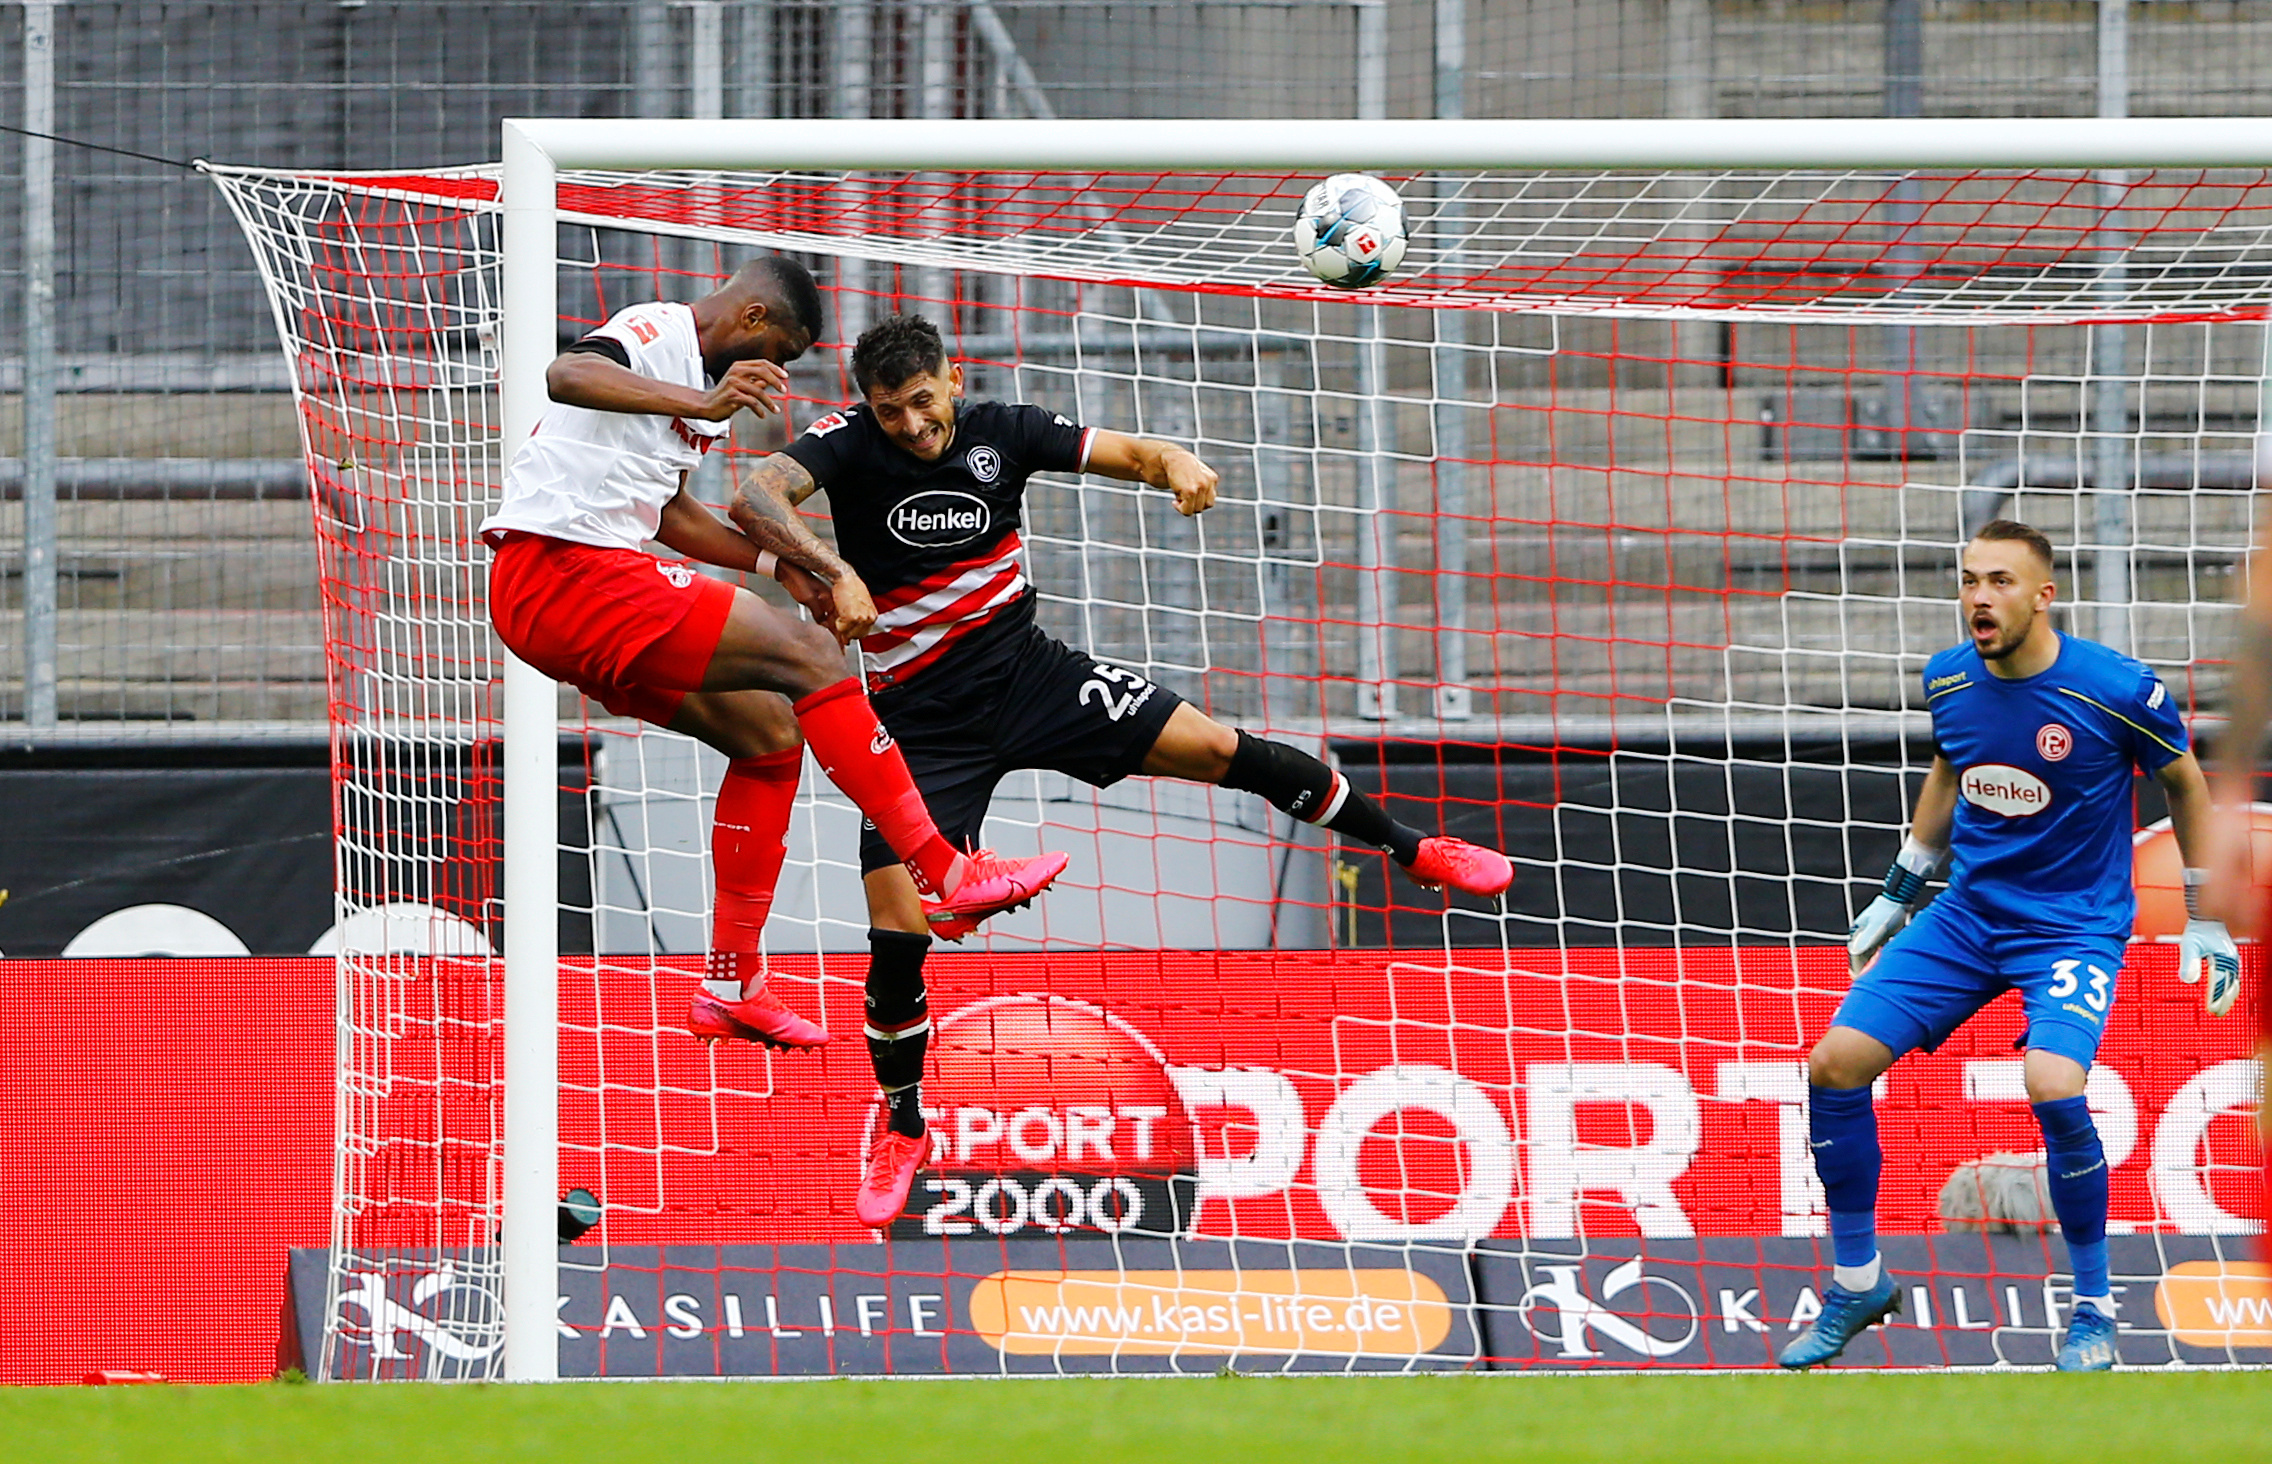 FC Cologne's Anthony Modeste scores their first goal, as play resumes behind closed doors following the outbreak of the coronavirus disease (COVID-19) during the Bundesliga match between FC Cologne and Fortuna Dusseldorf, at  RheinEnergieStadion, in Cologne, Germany, on May 24, 2020. Photo: Reuters